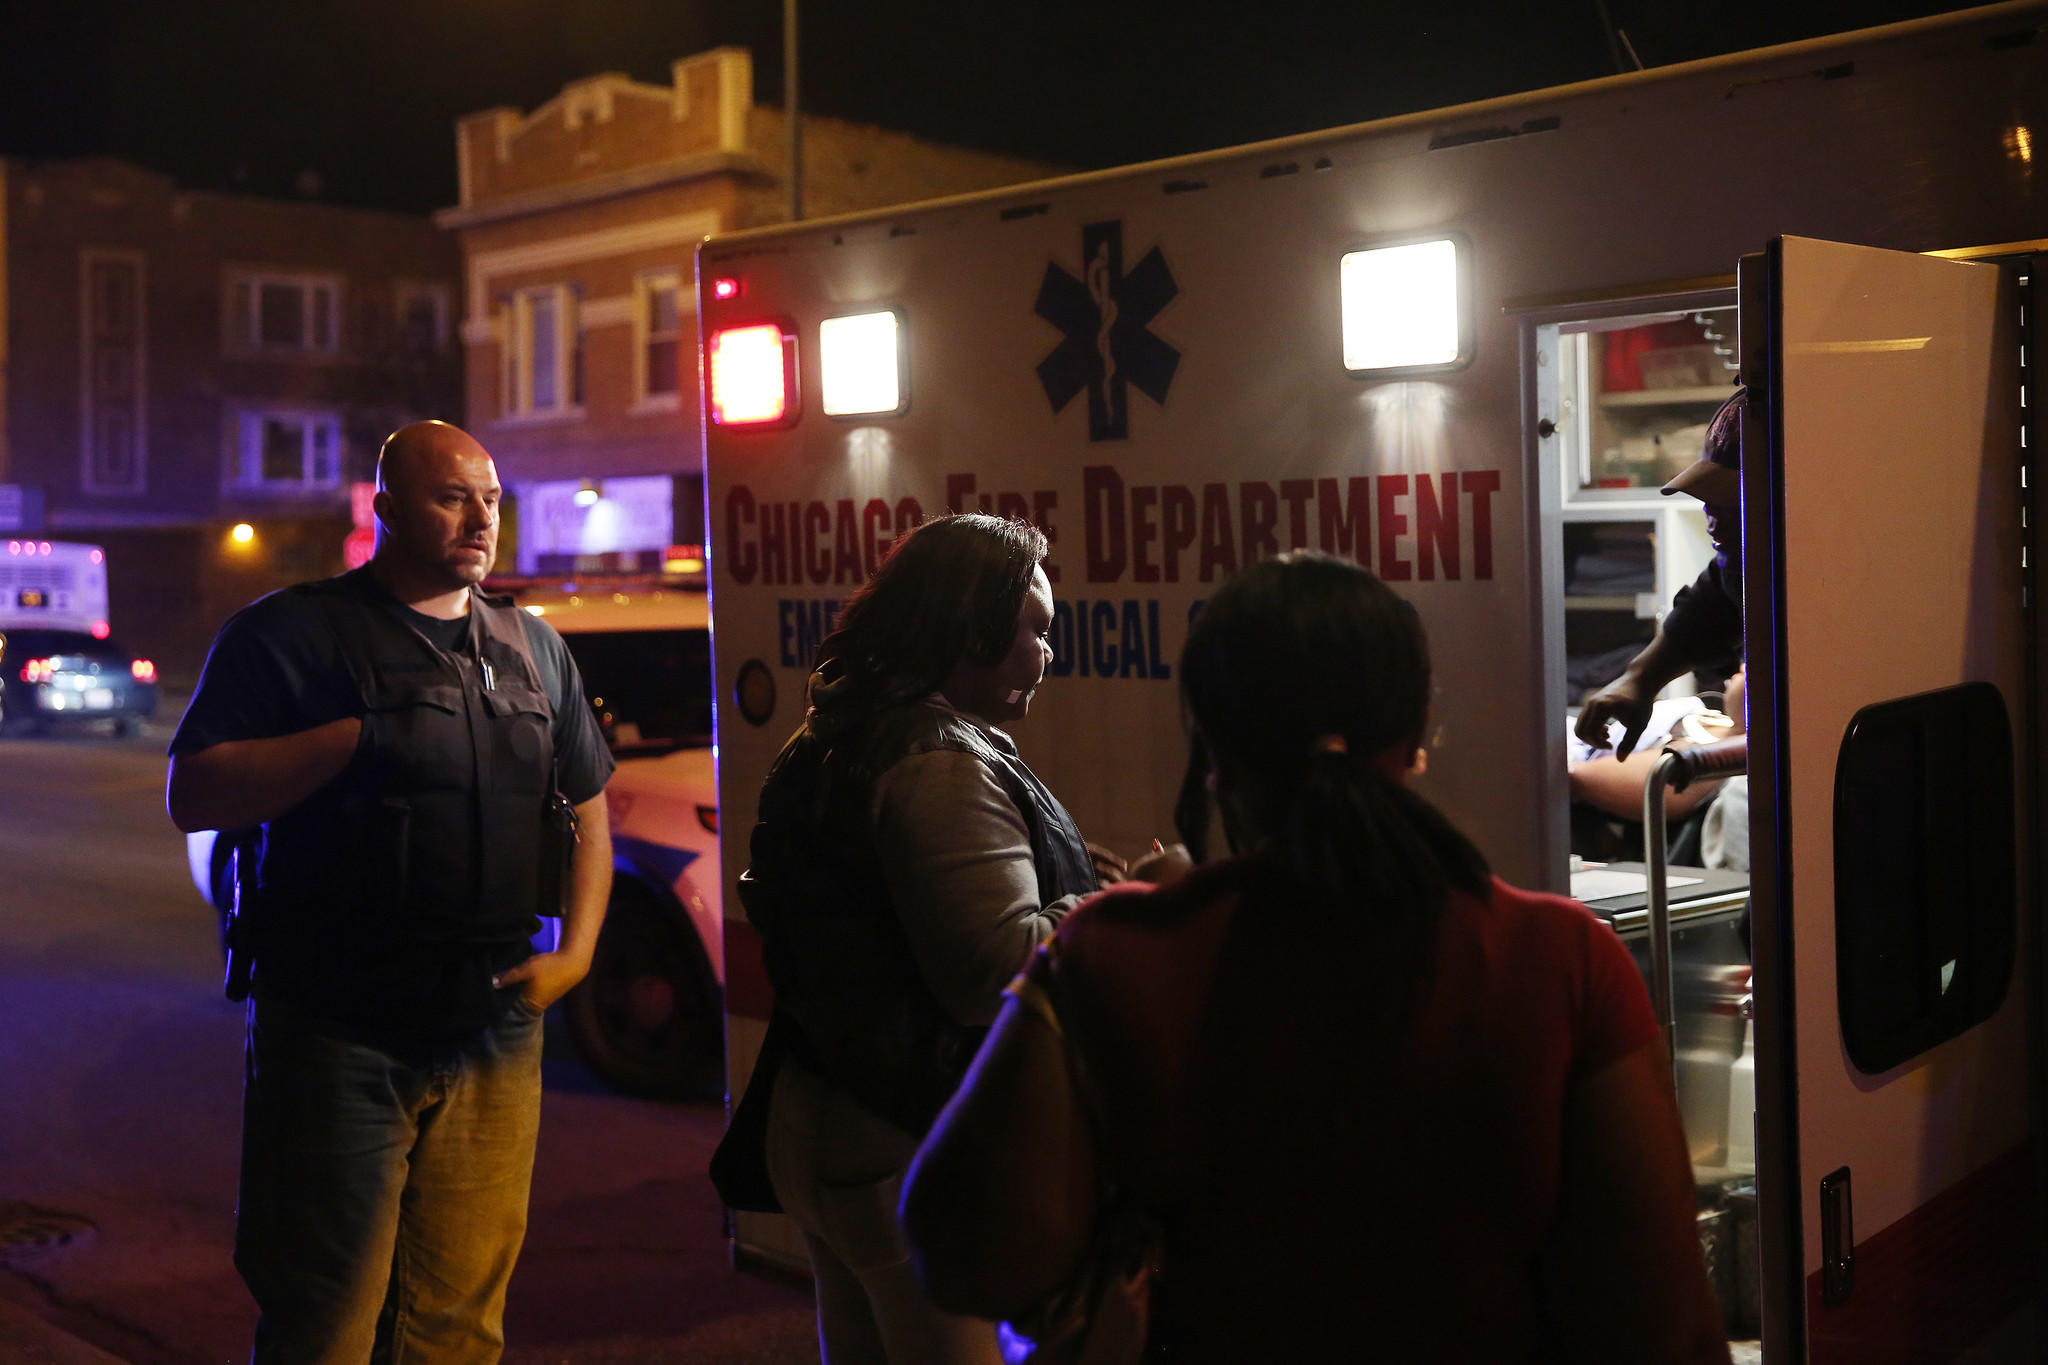 A person is taken by ambulance from the scene where a 32-year-old man and a 22-year-old woman were each shot in the leg on Saturday night near the intersection of South Cicero Avenue and West Congress Parkway in Chicago.